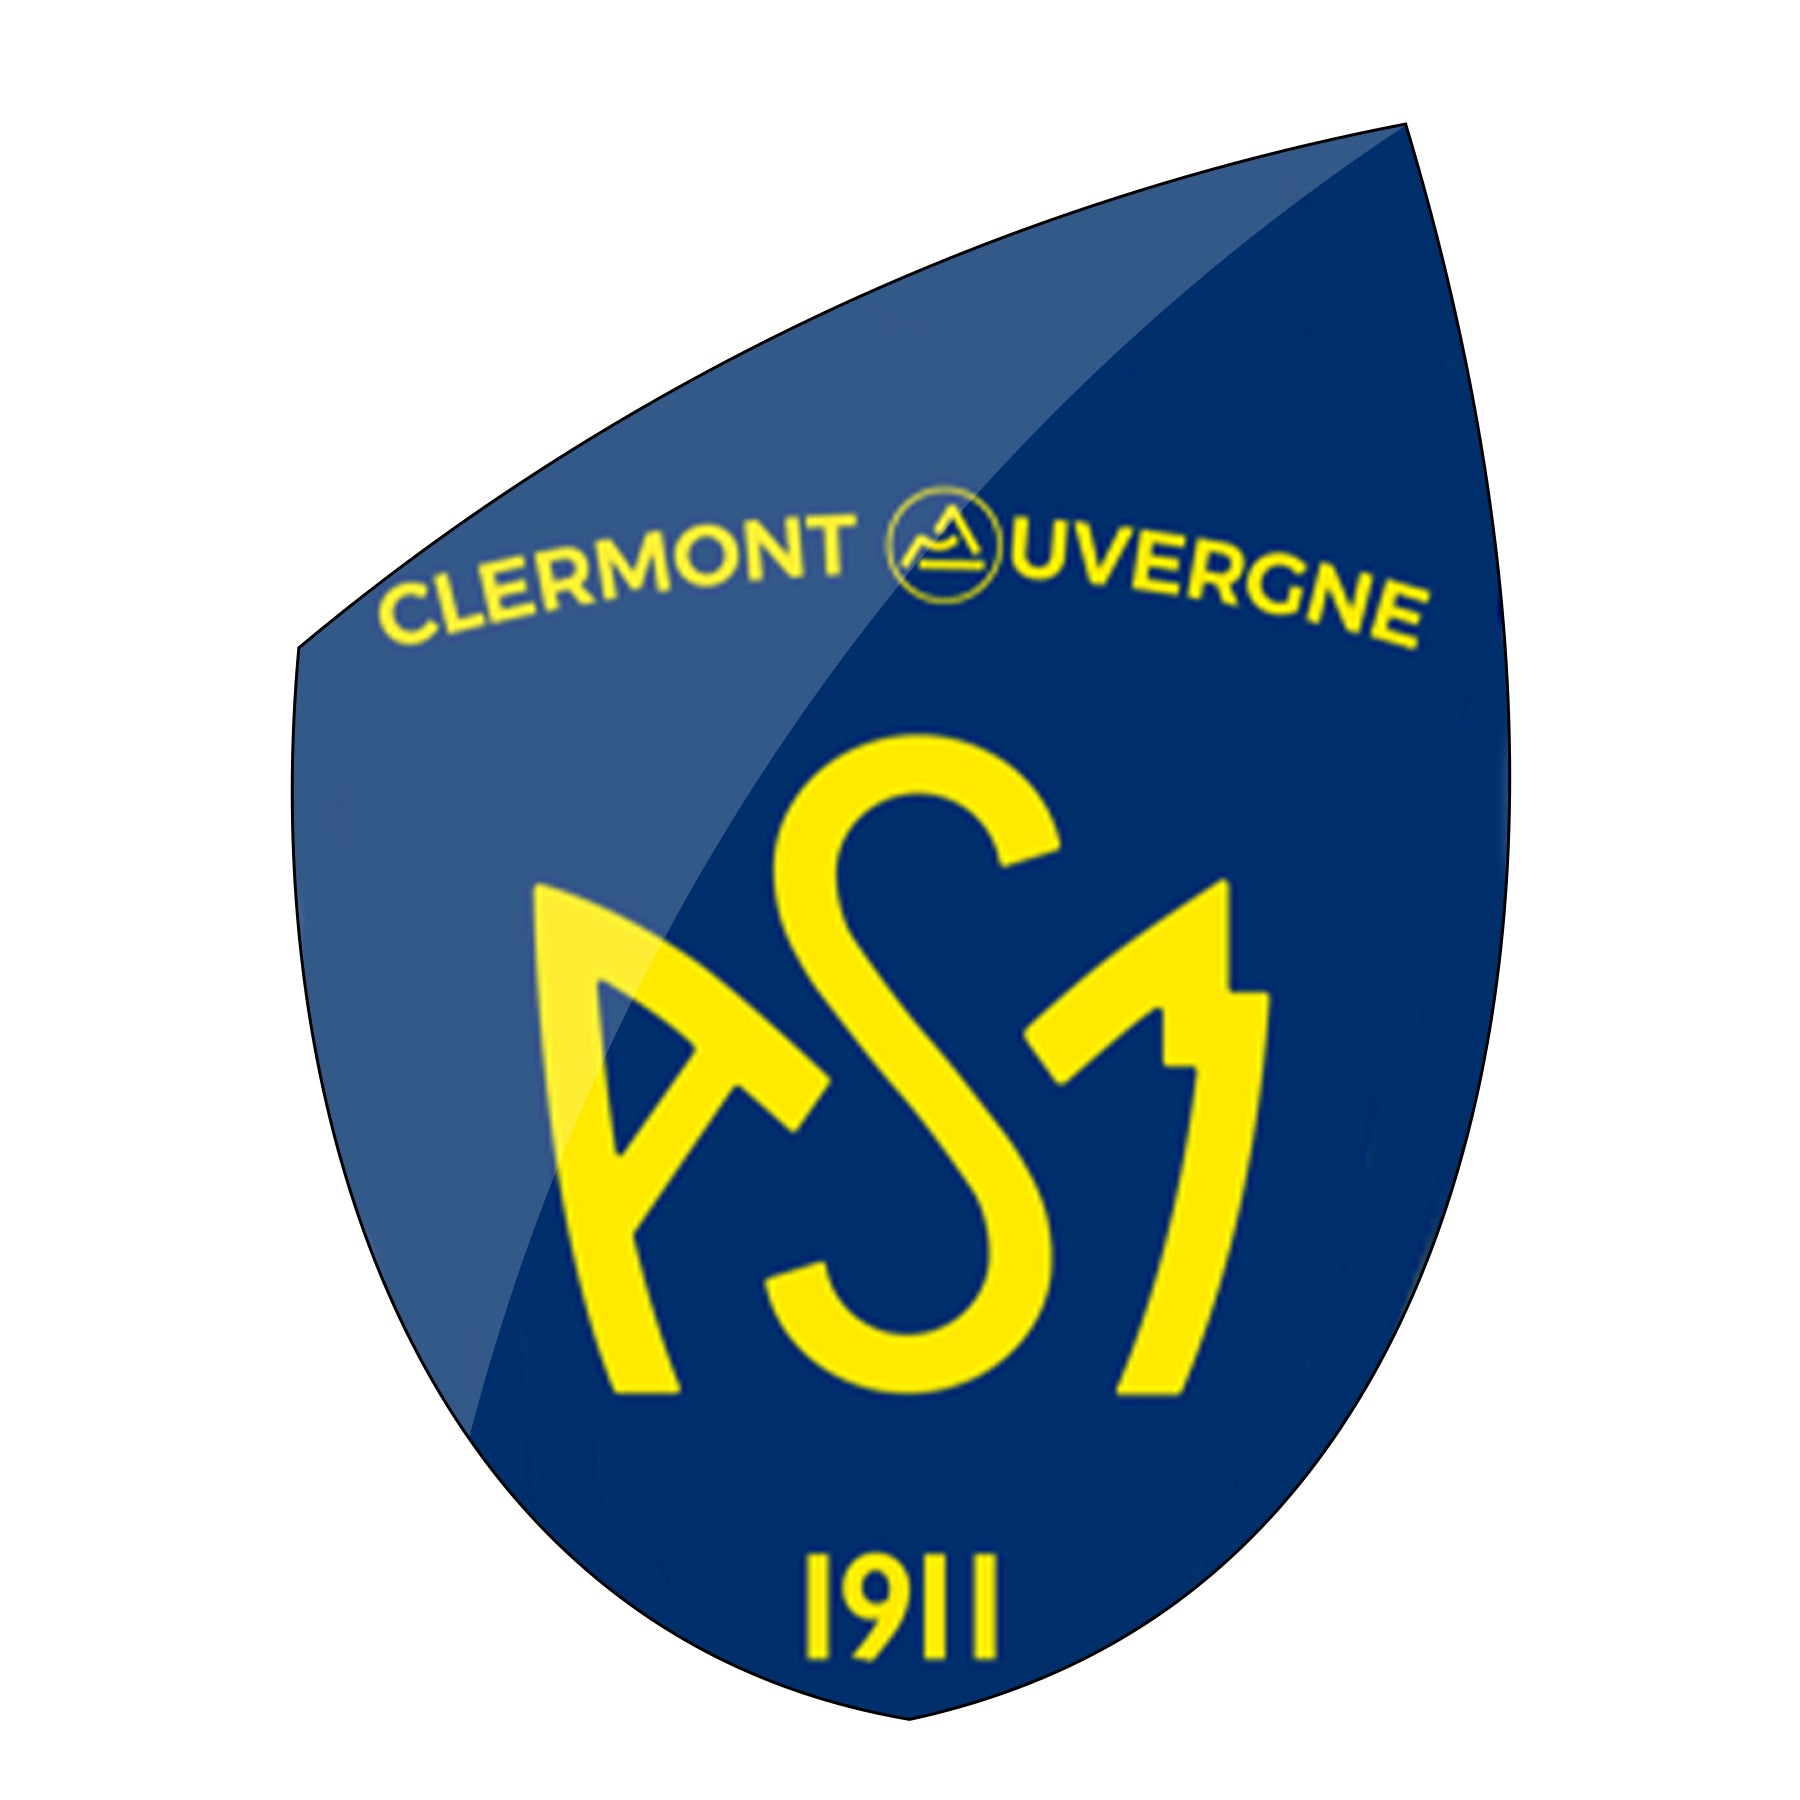 Exclusive Clermont Auvergne Rugby Gear